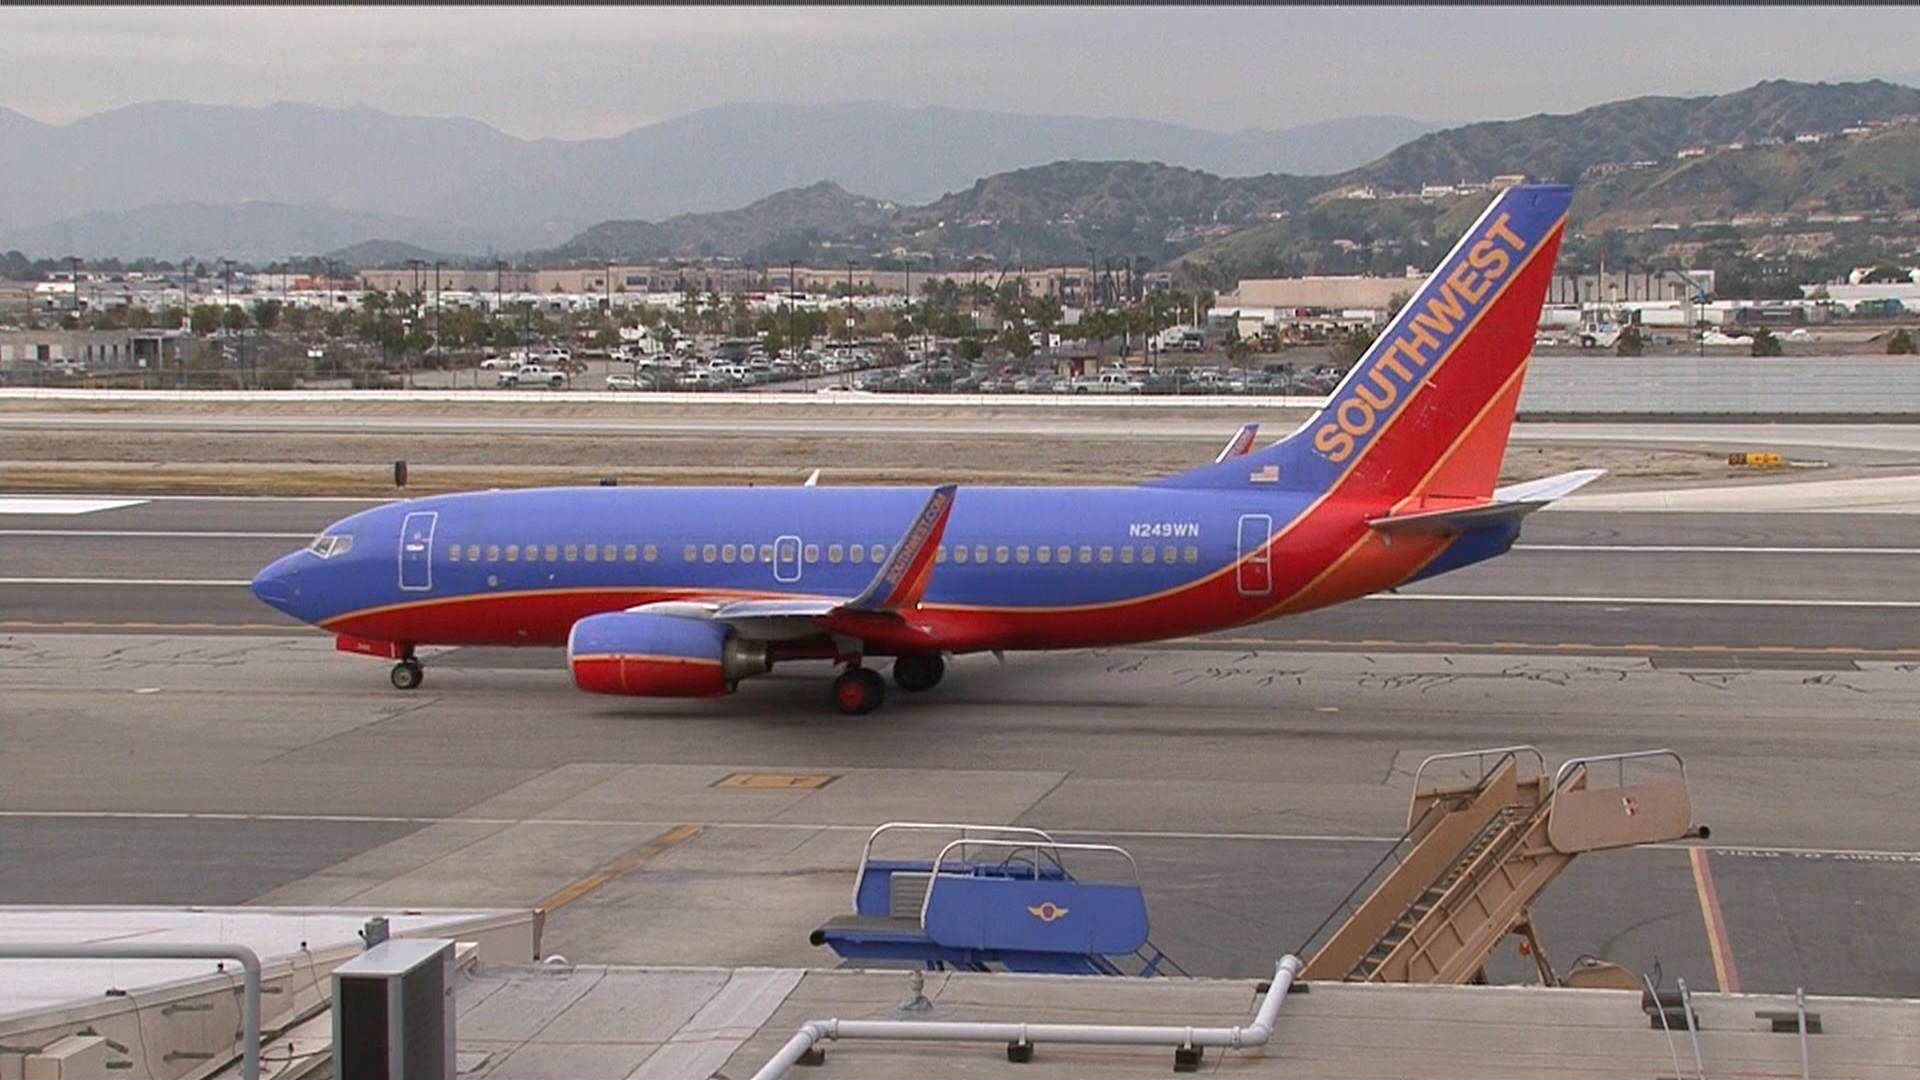 Southwest Airlines Sued By Federal Government Over Plane. Camp Lejeune Naval Hospital Direct Tv Review. Ultrasound Tech Schools In Las Vegas. Residential Hvac Design Hotel Marketing Sales. How To Reduce Razor Burn Chapter 13 Bankrupsy. Make Your Own Website Page Home Equity Loans. Organ Procurement And Transplantation Network. 18 French Coude Catheter Bottom Teeth Braces. Plumbing Newport News Va Event Viewer Monitor